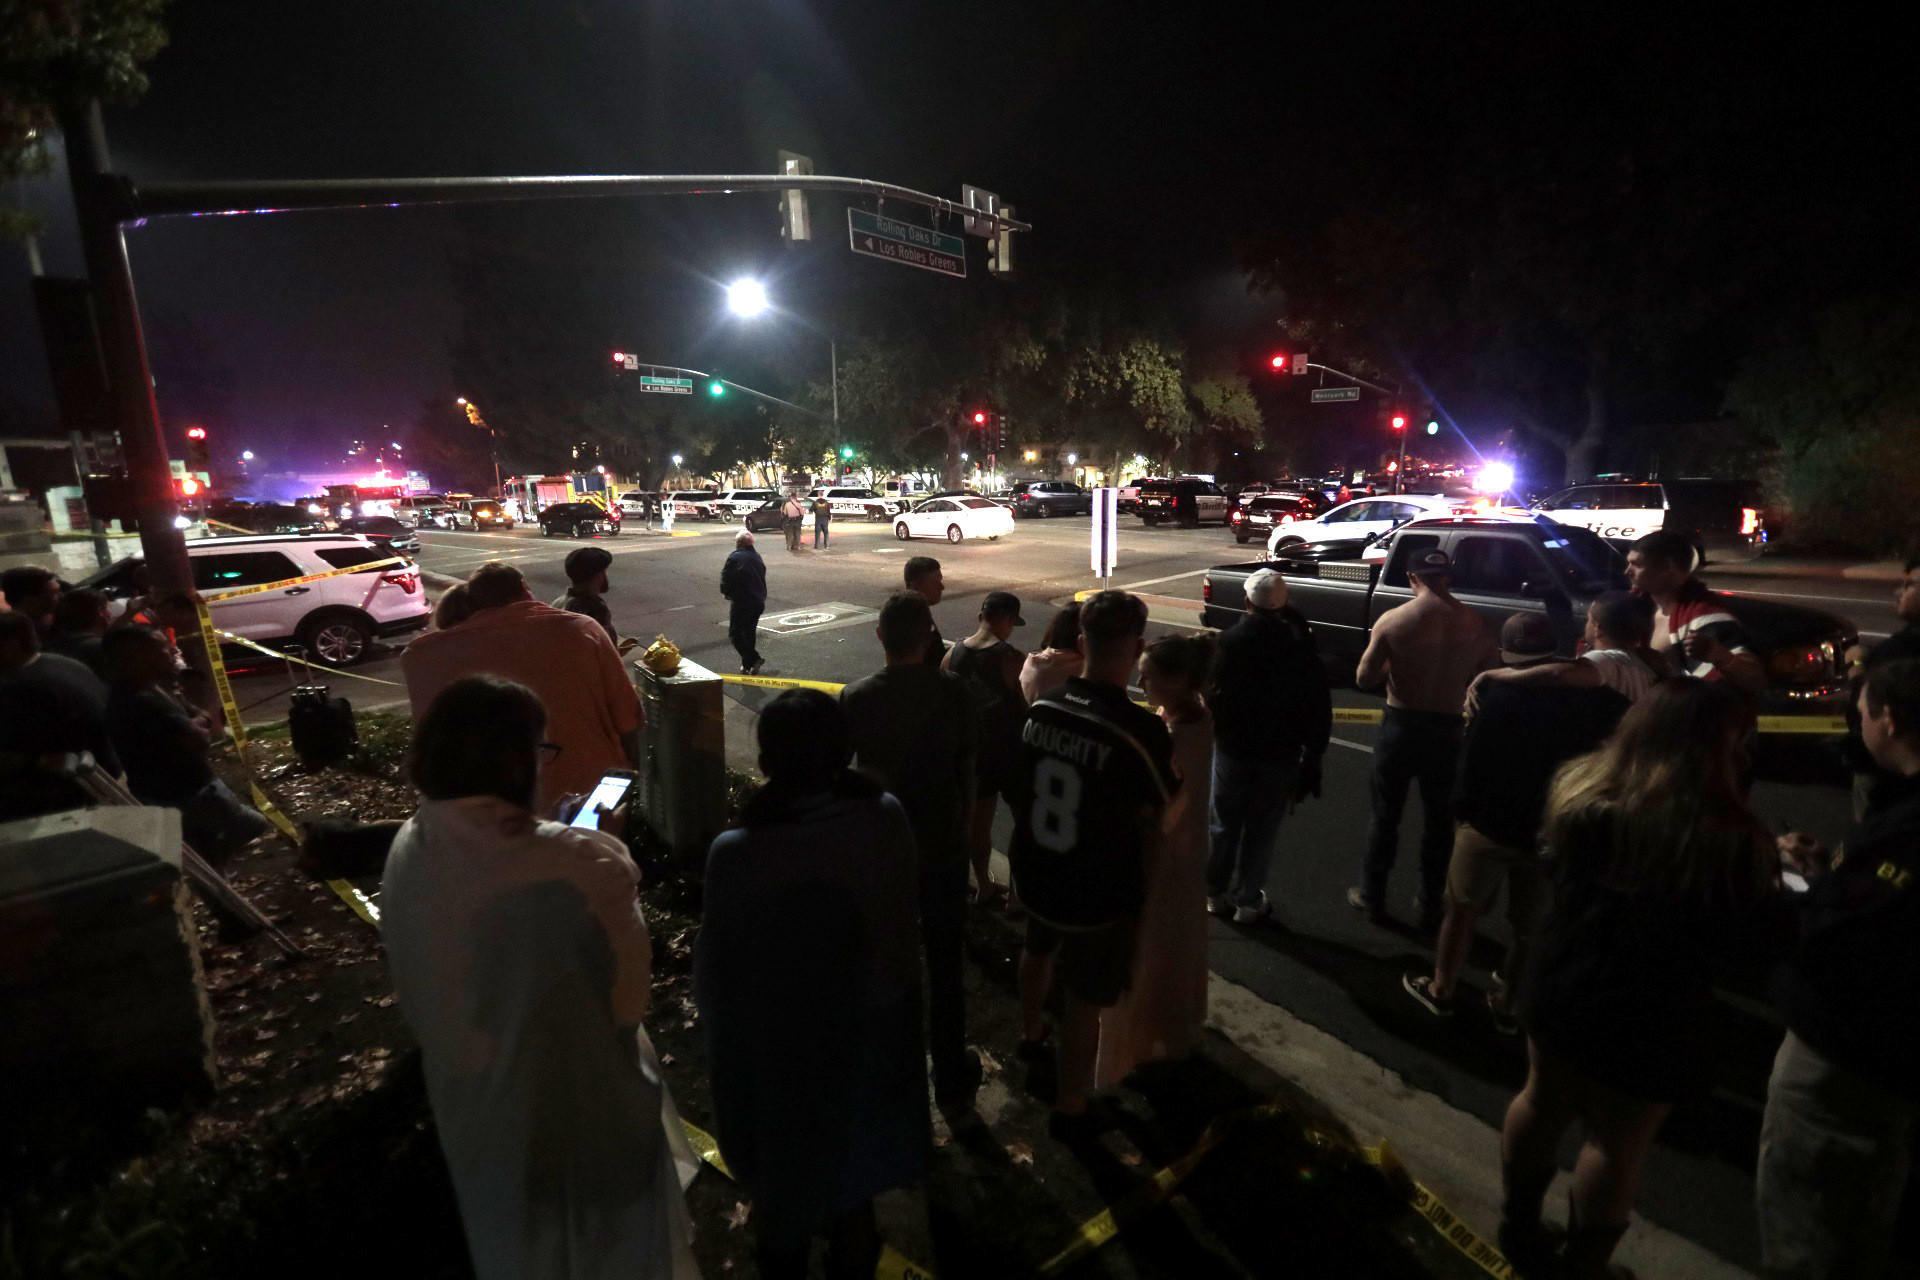 Rams mourn after mass shooting 4 miles from their Thousand Oaks practice facility